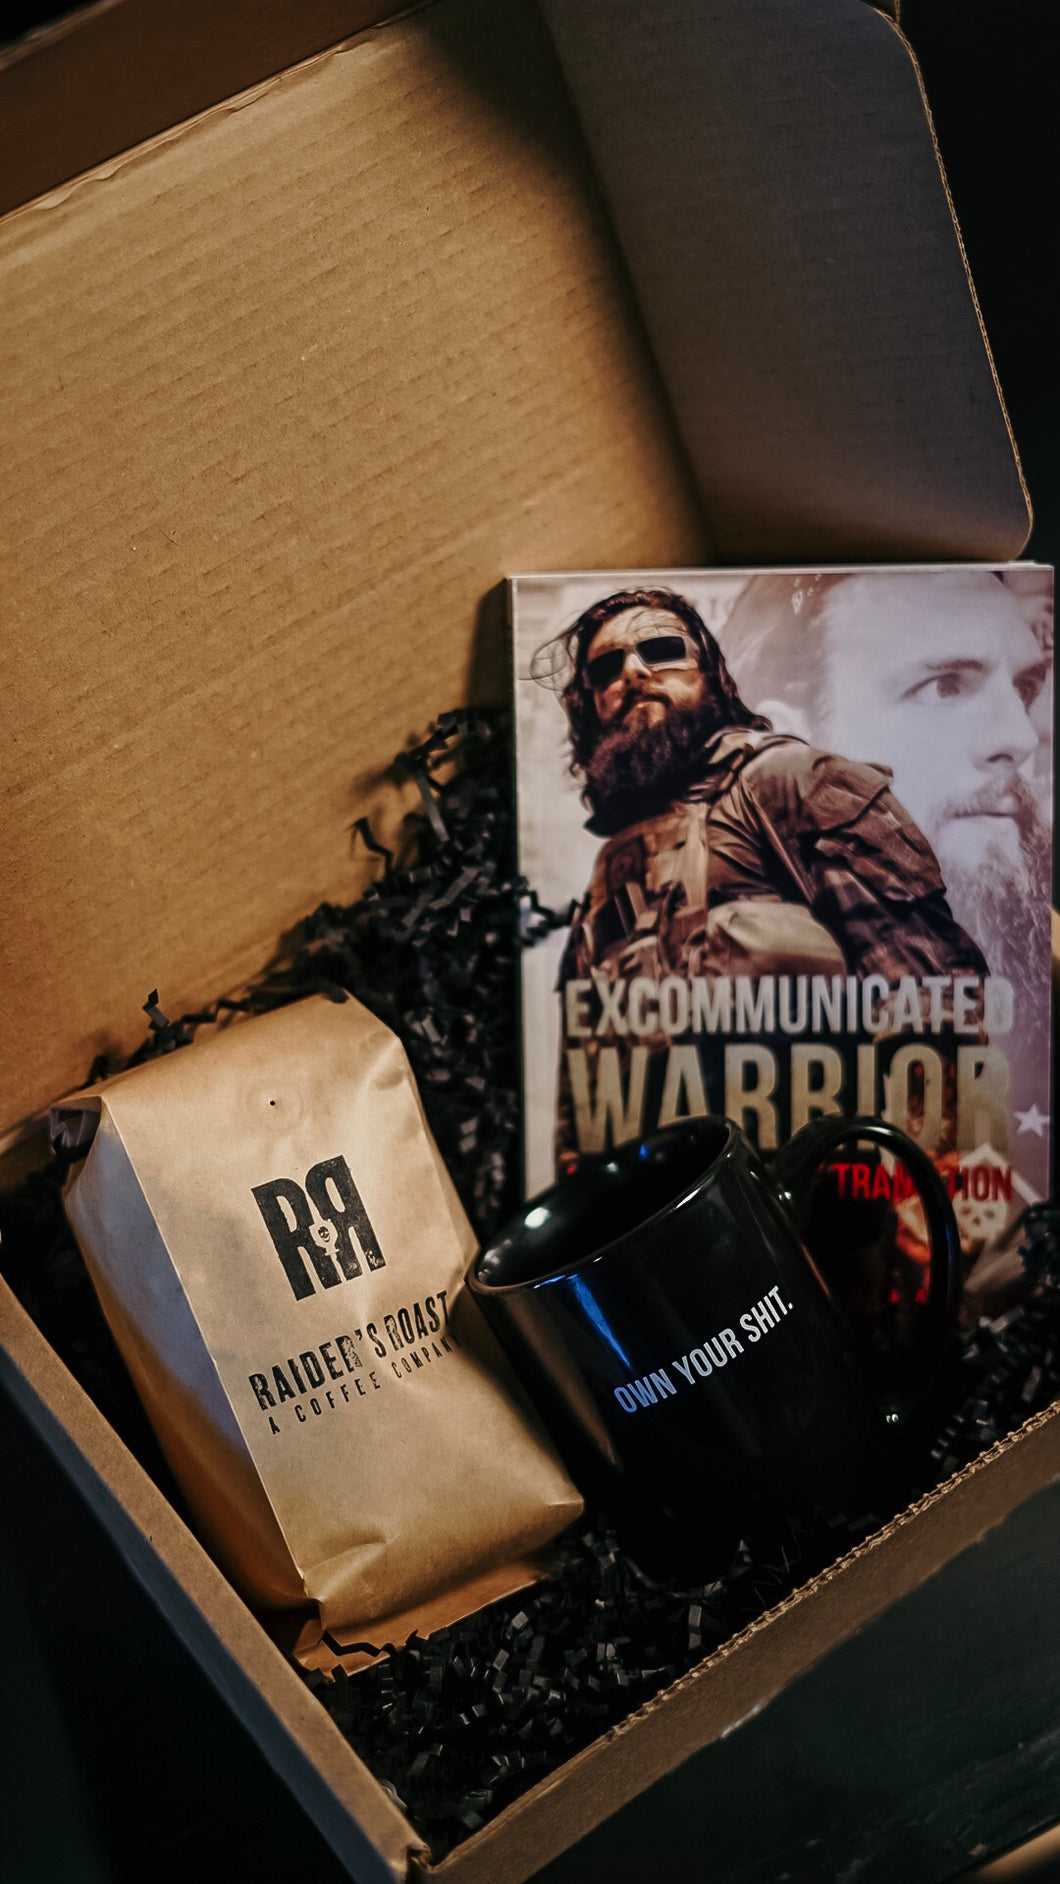 Raider's Roast Excommunicated Warrior Gift Set